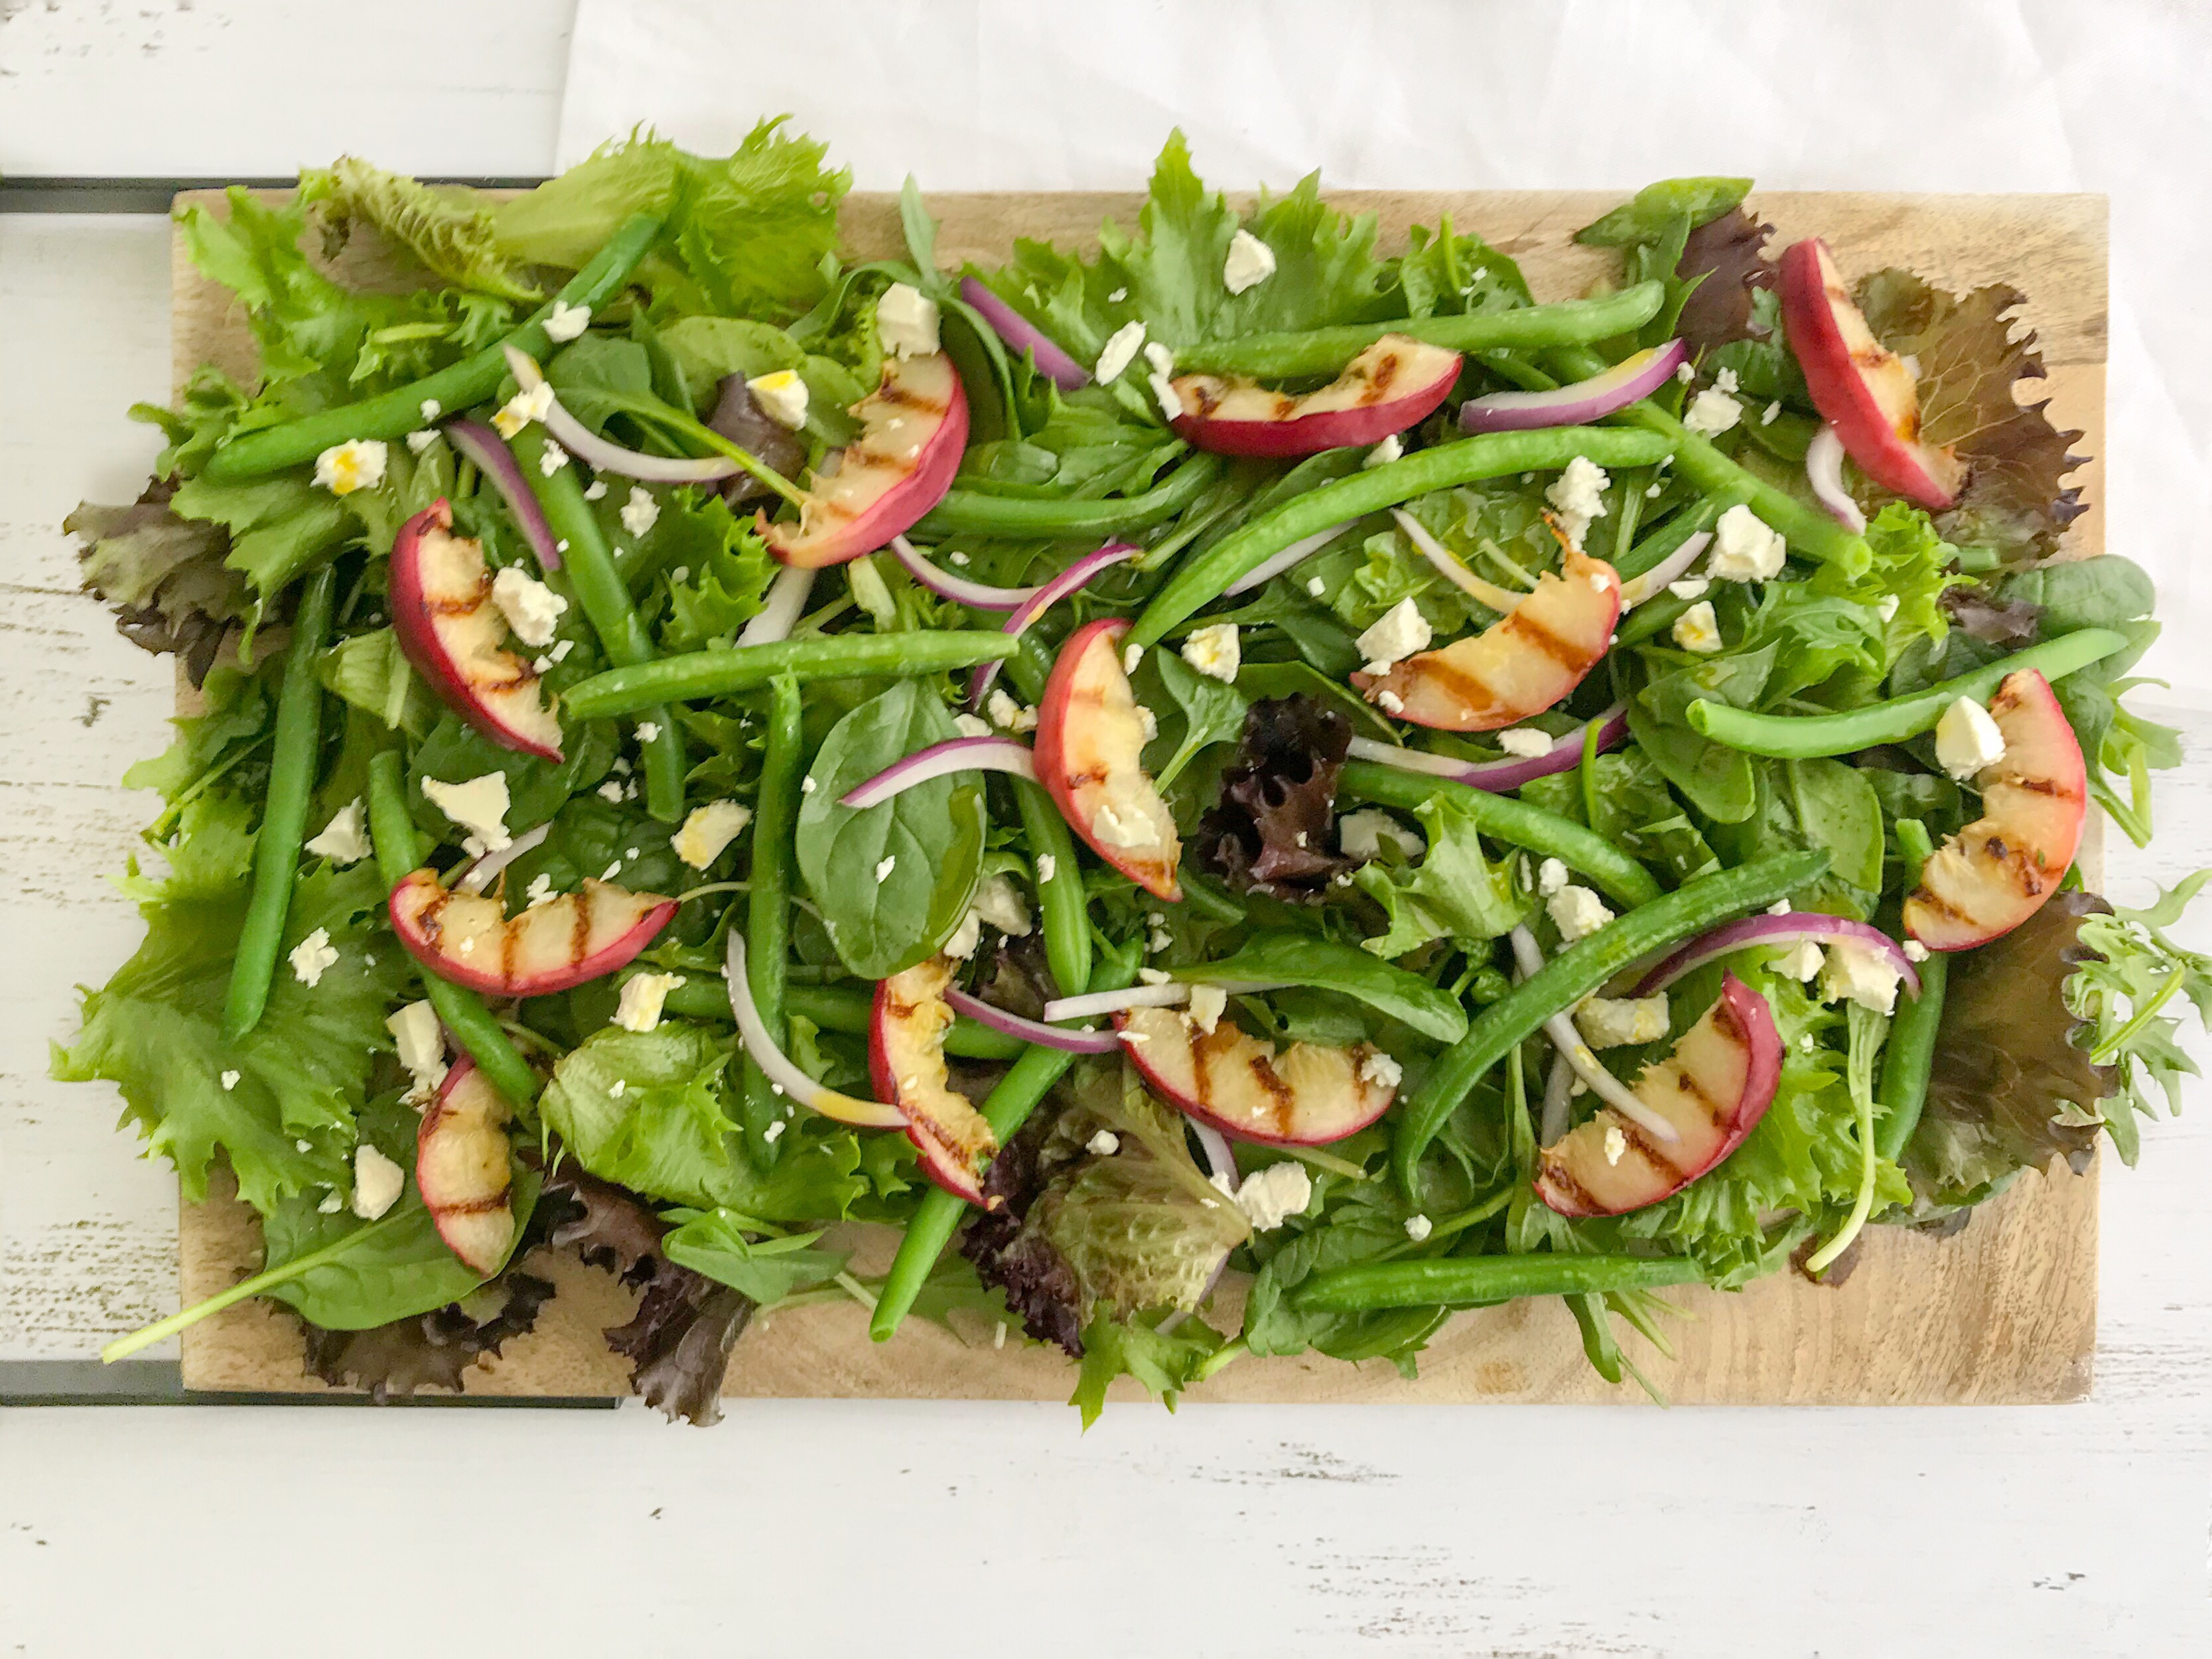 Grilled peach, green bean and almond salad spread out on a wooden platter